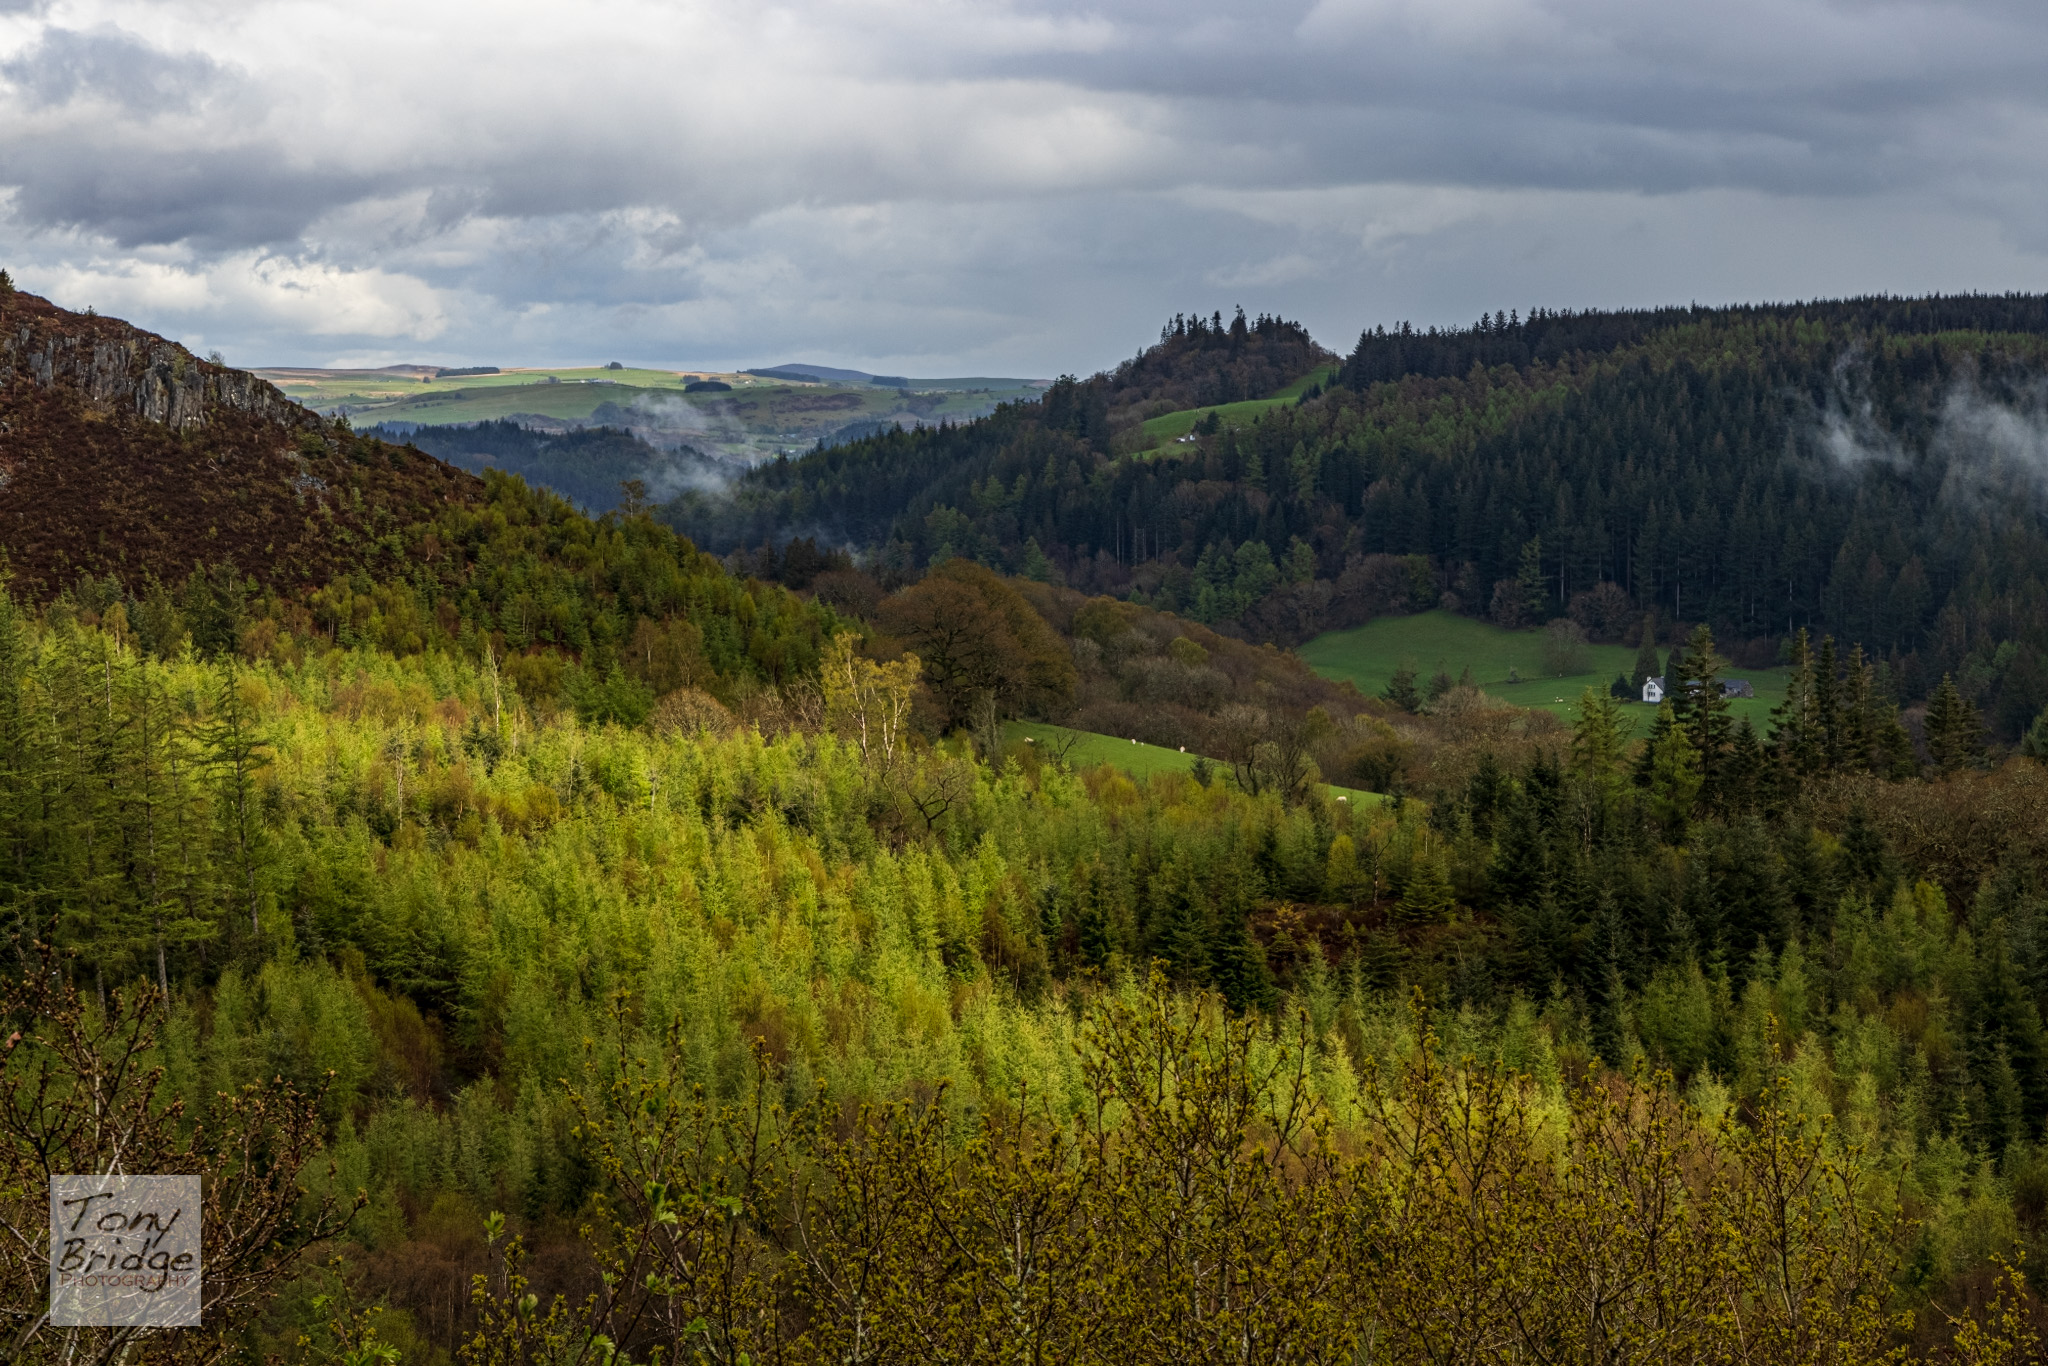 View across the Afon Llugwy valley towards Betws-y-Coed.